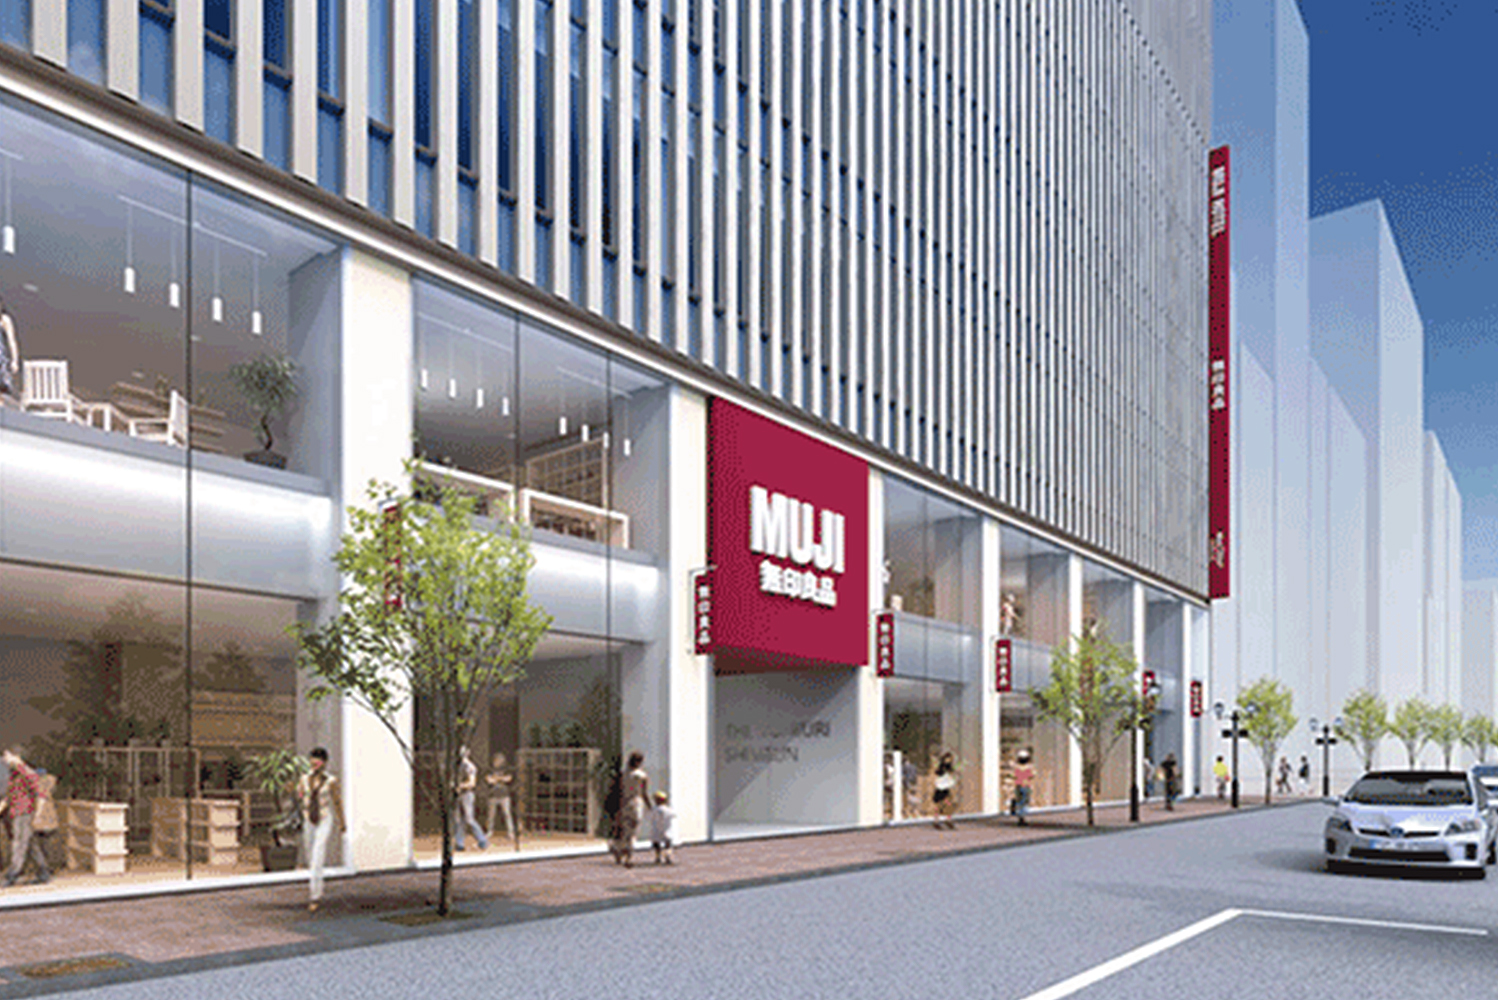 The Tokyo location will open in the spring of 2019, while the Chinese outpost is scheduled to open by the end of 2017.